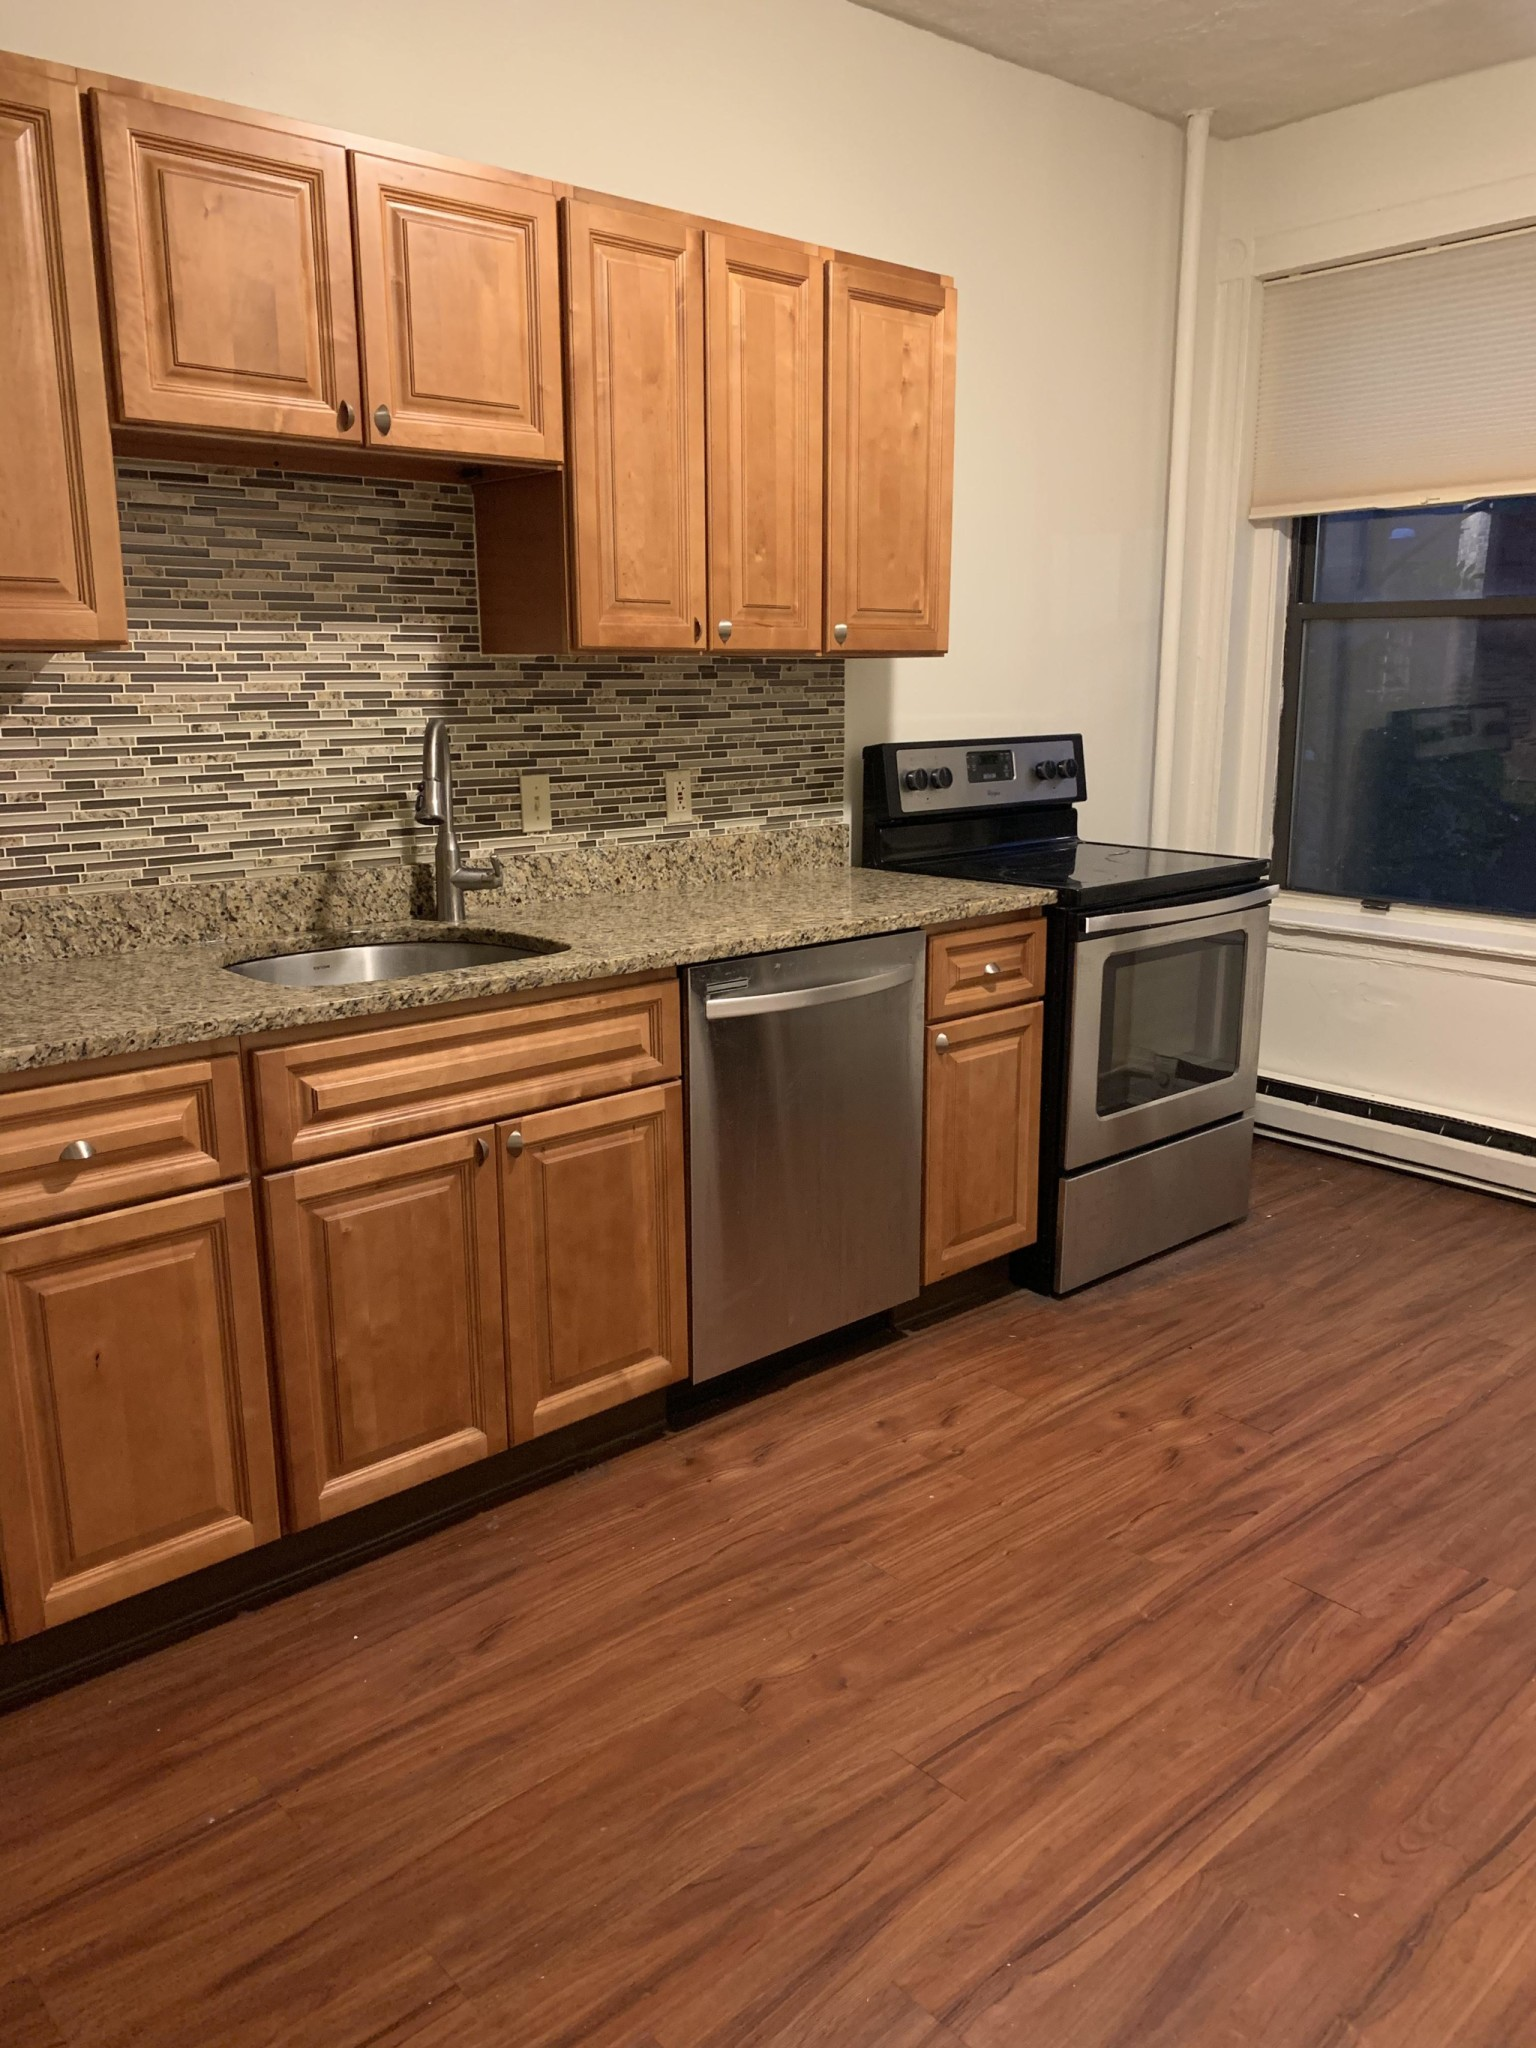 4 Beds, 1 Bath apartment in Boston, South End for $3,900